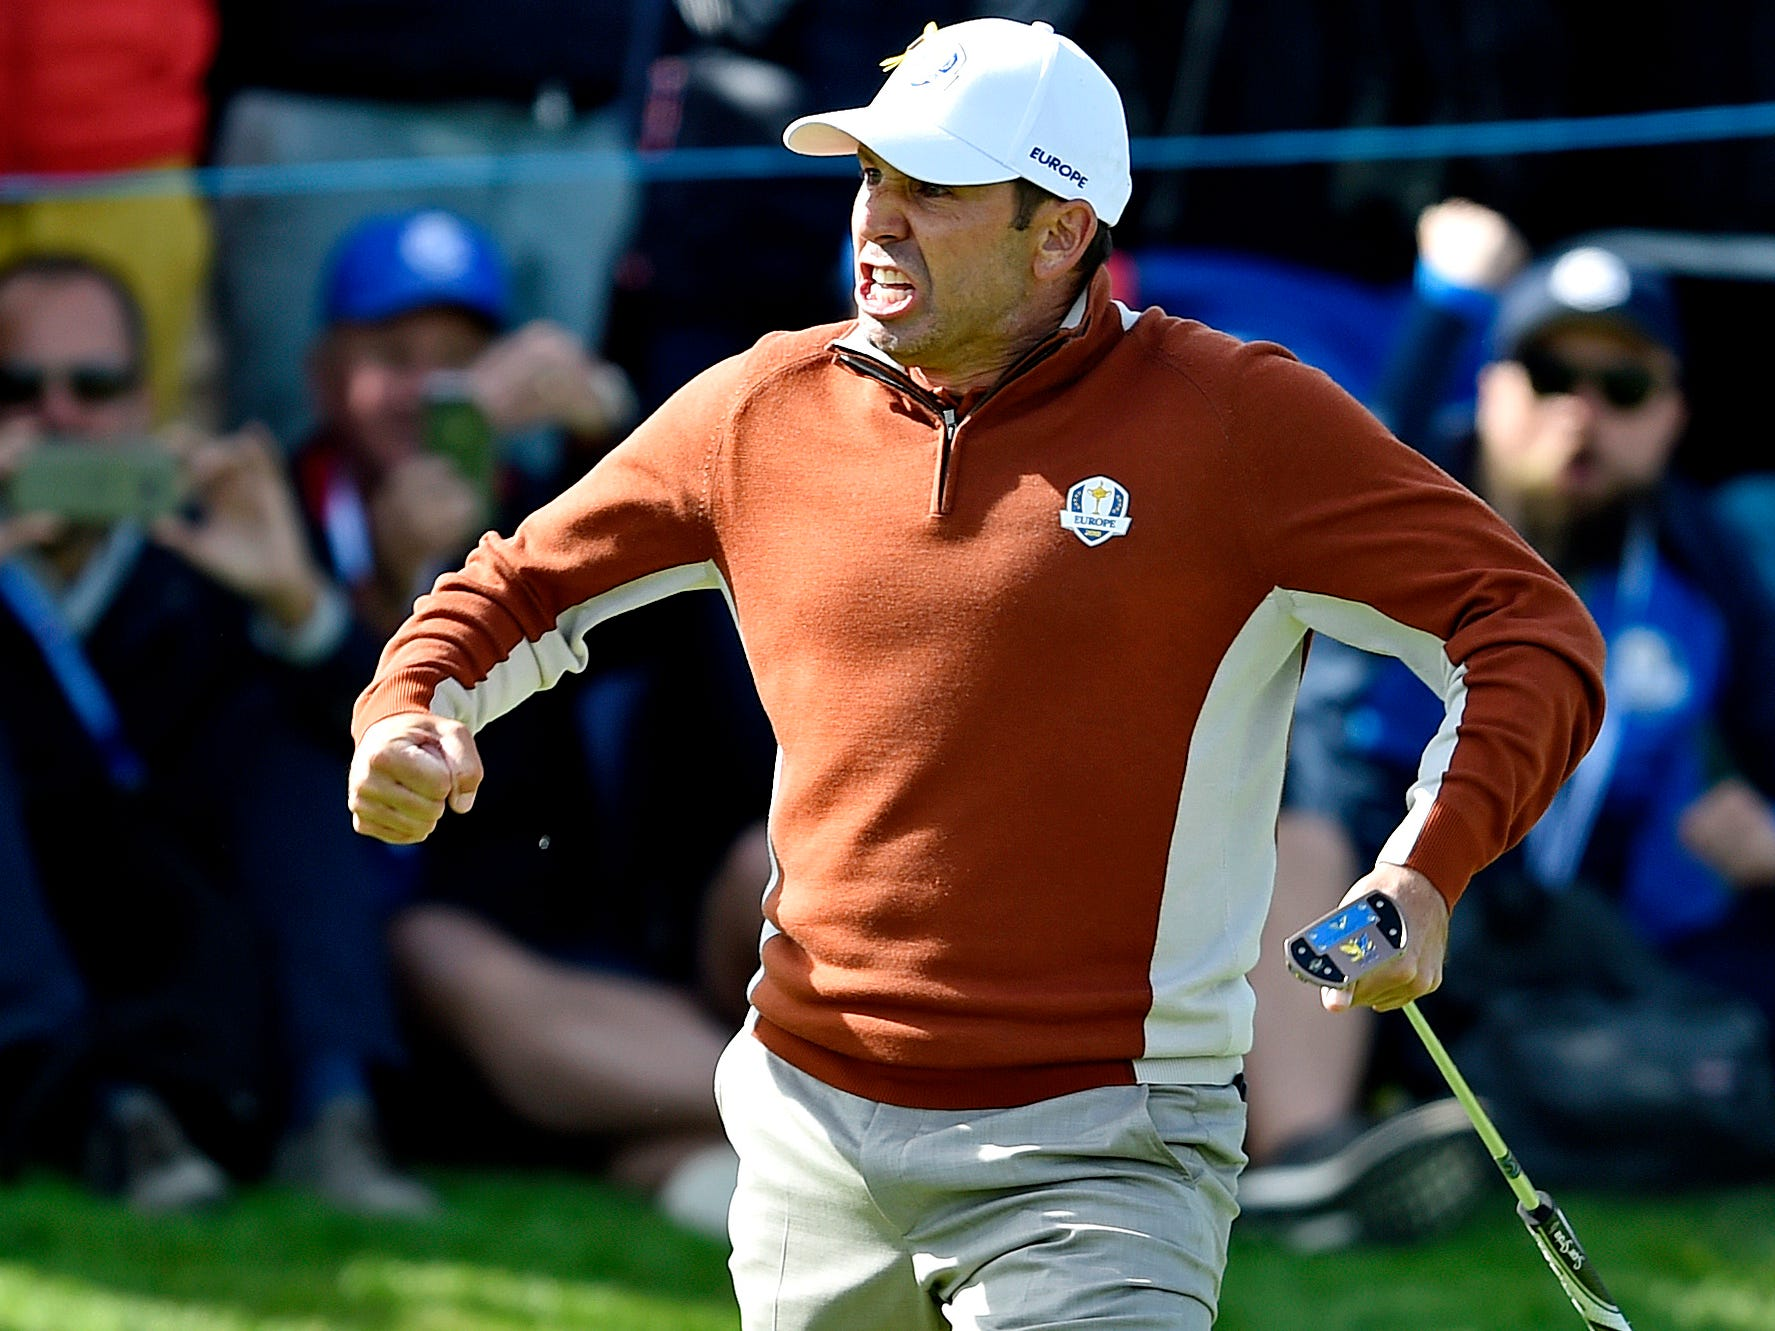 Sergio Garcia celebrates after making a putt on the 17th green to win his morning fourball match.